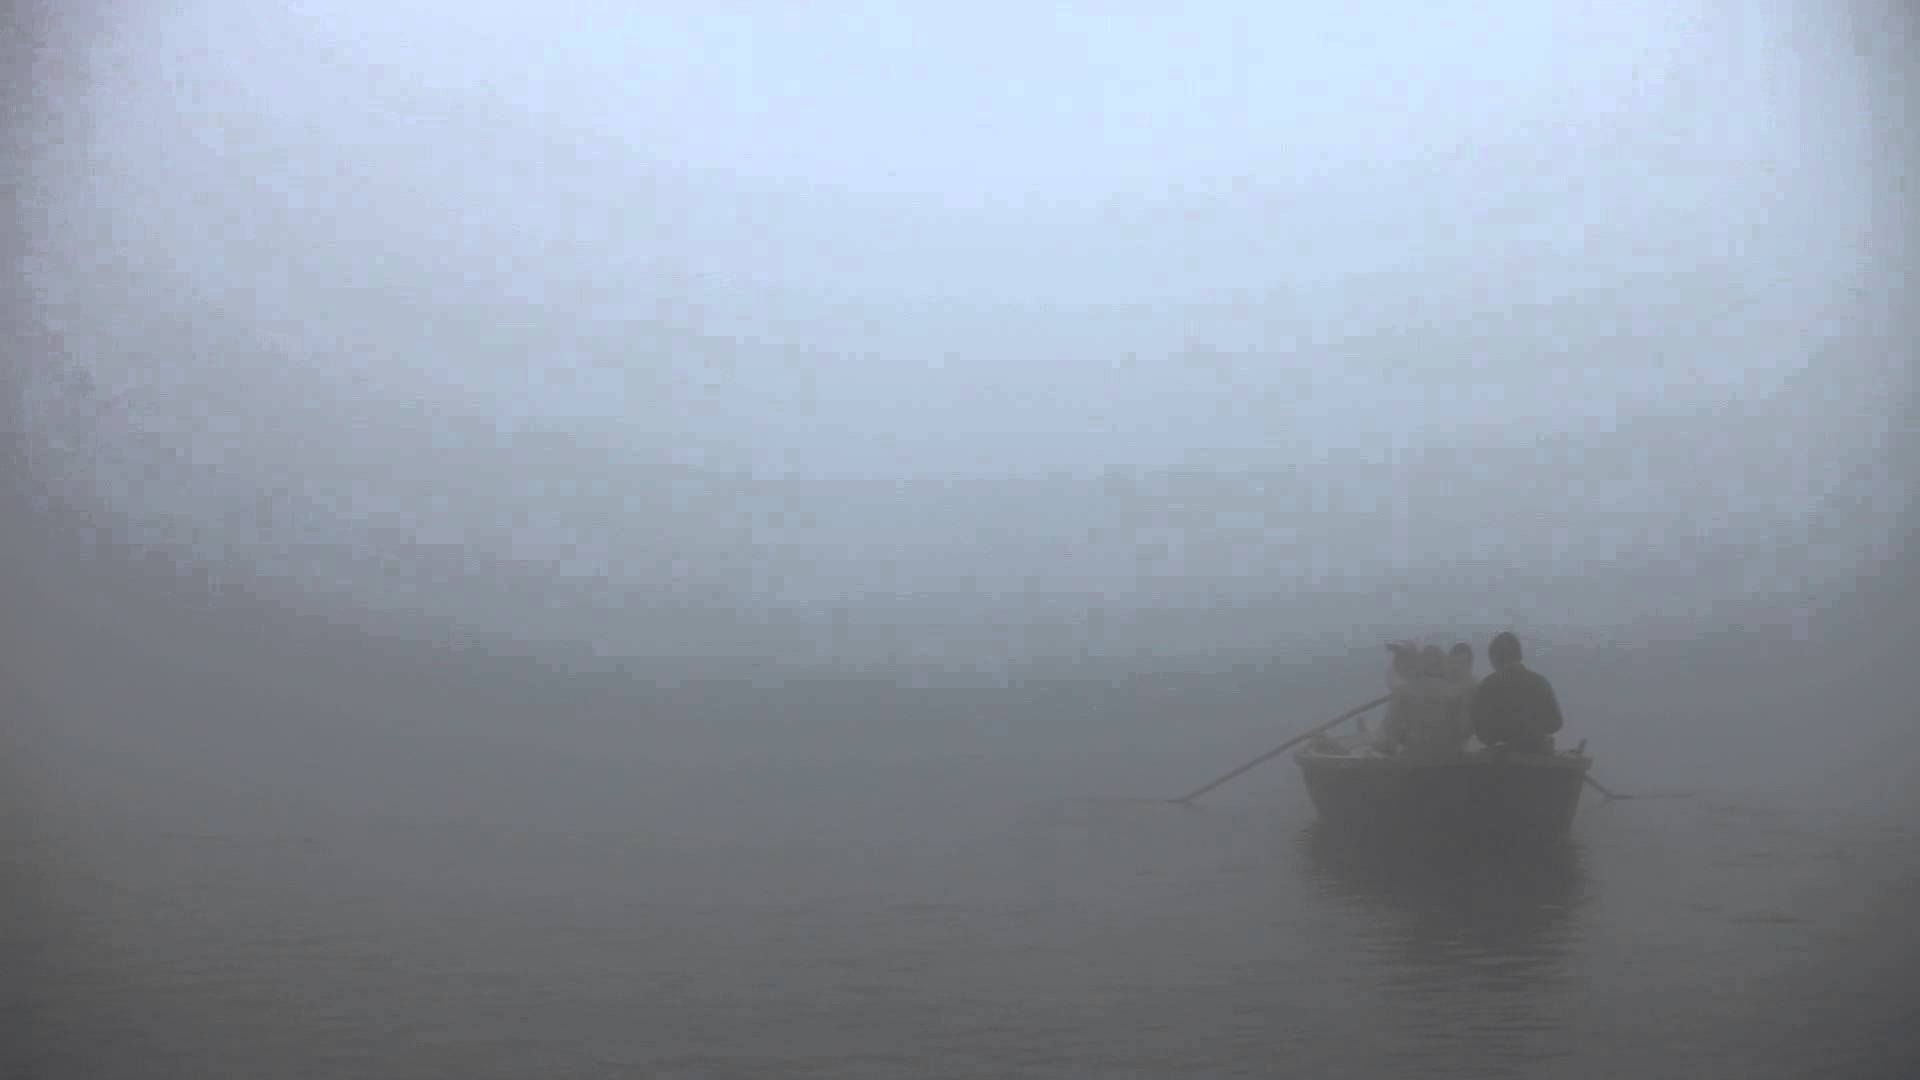 Boat disappearing into the fog in the Ganges: Varanasi, India ...